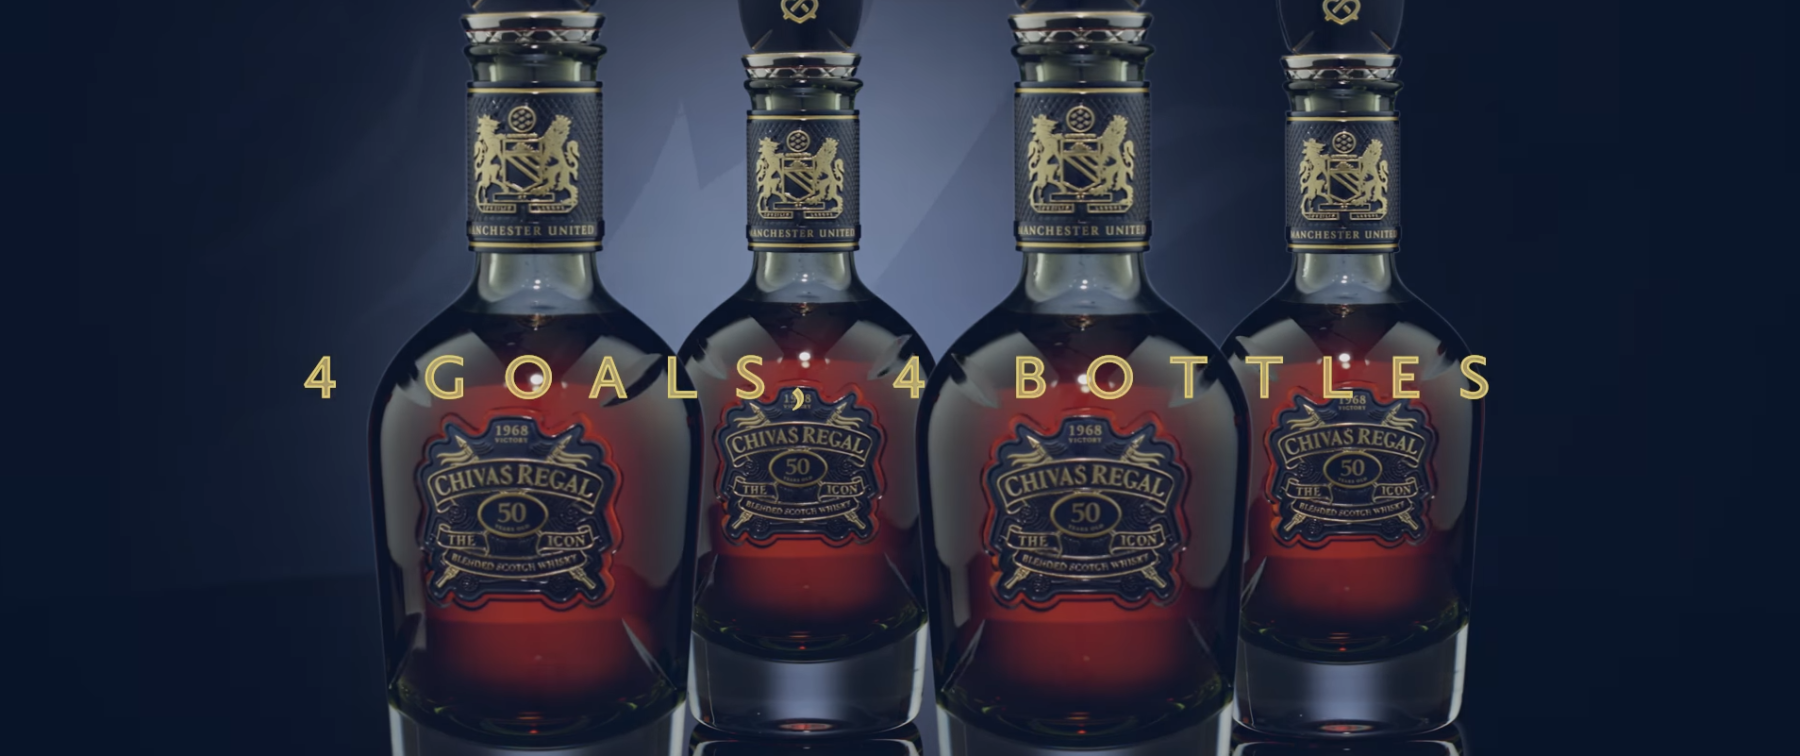 bc5cc8553 Chivas have released four bottles of their first ever 50 year old Scotch